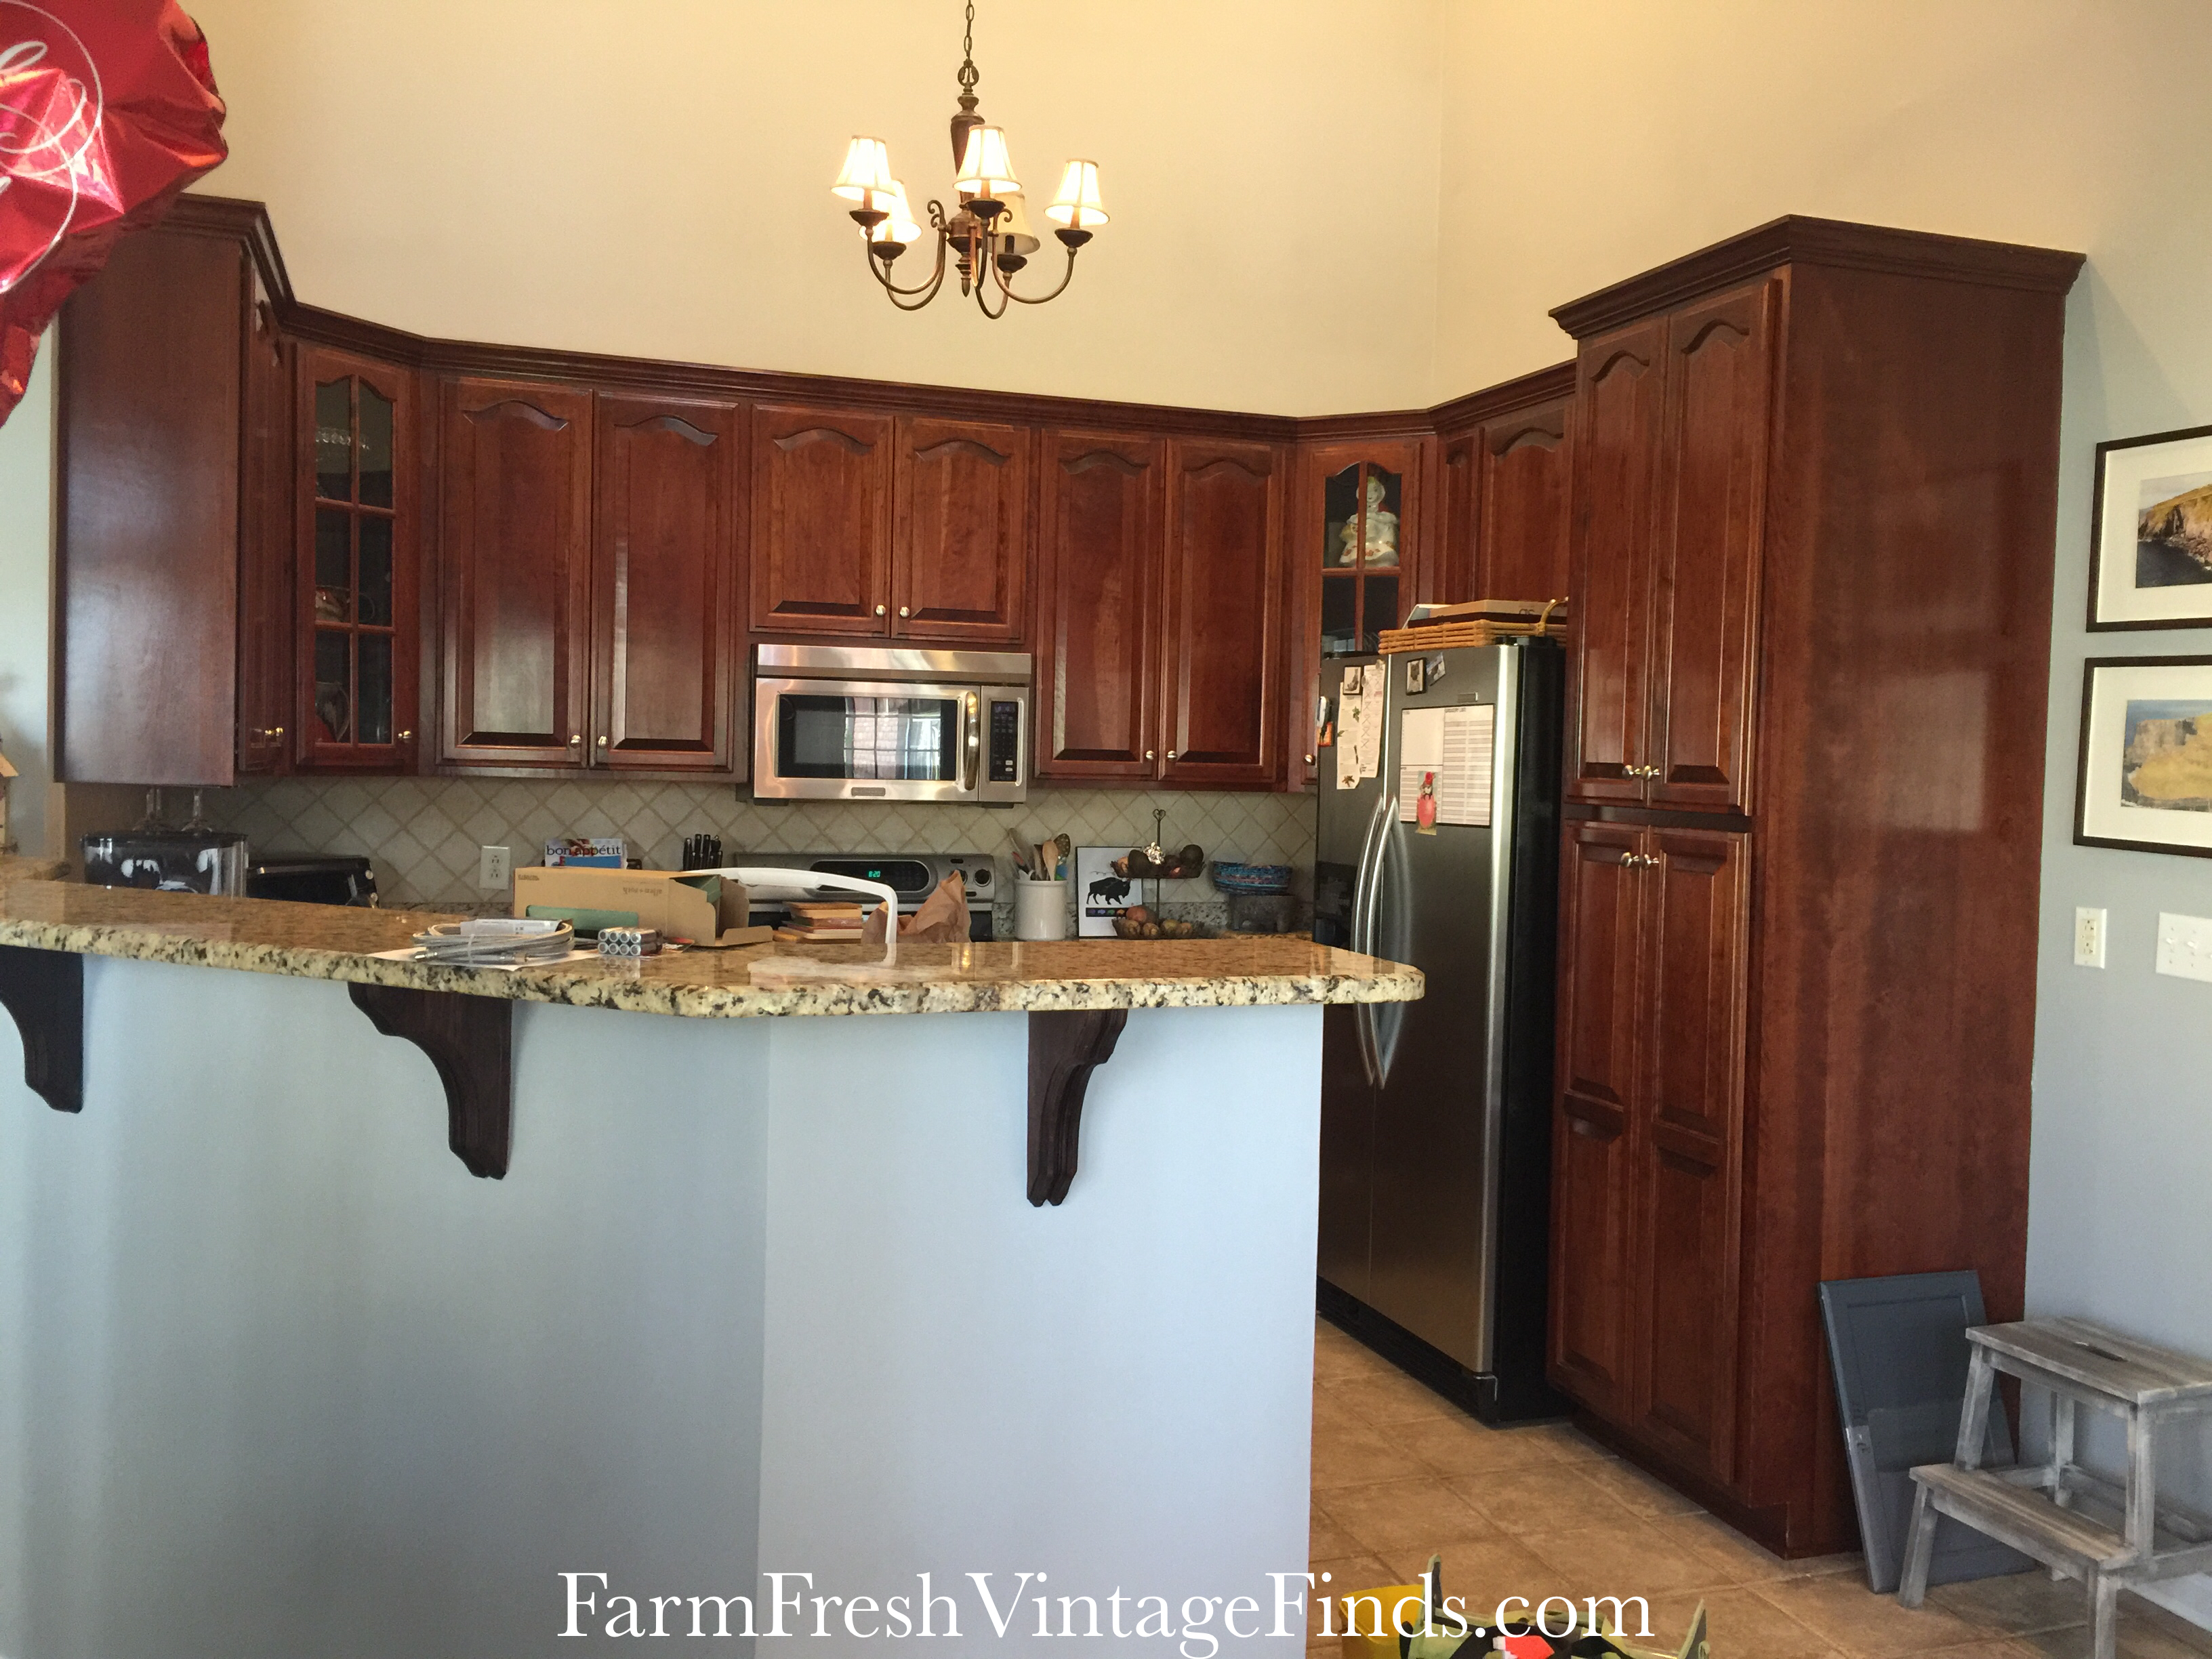 Good Paint Finishes For Kitchen Cabinets Part - 6: Before Kitchen Cabinets